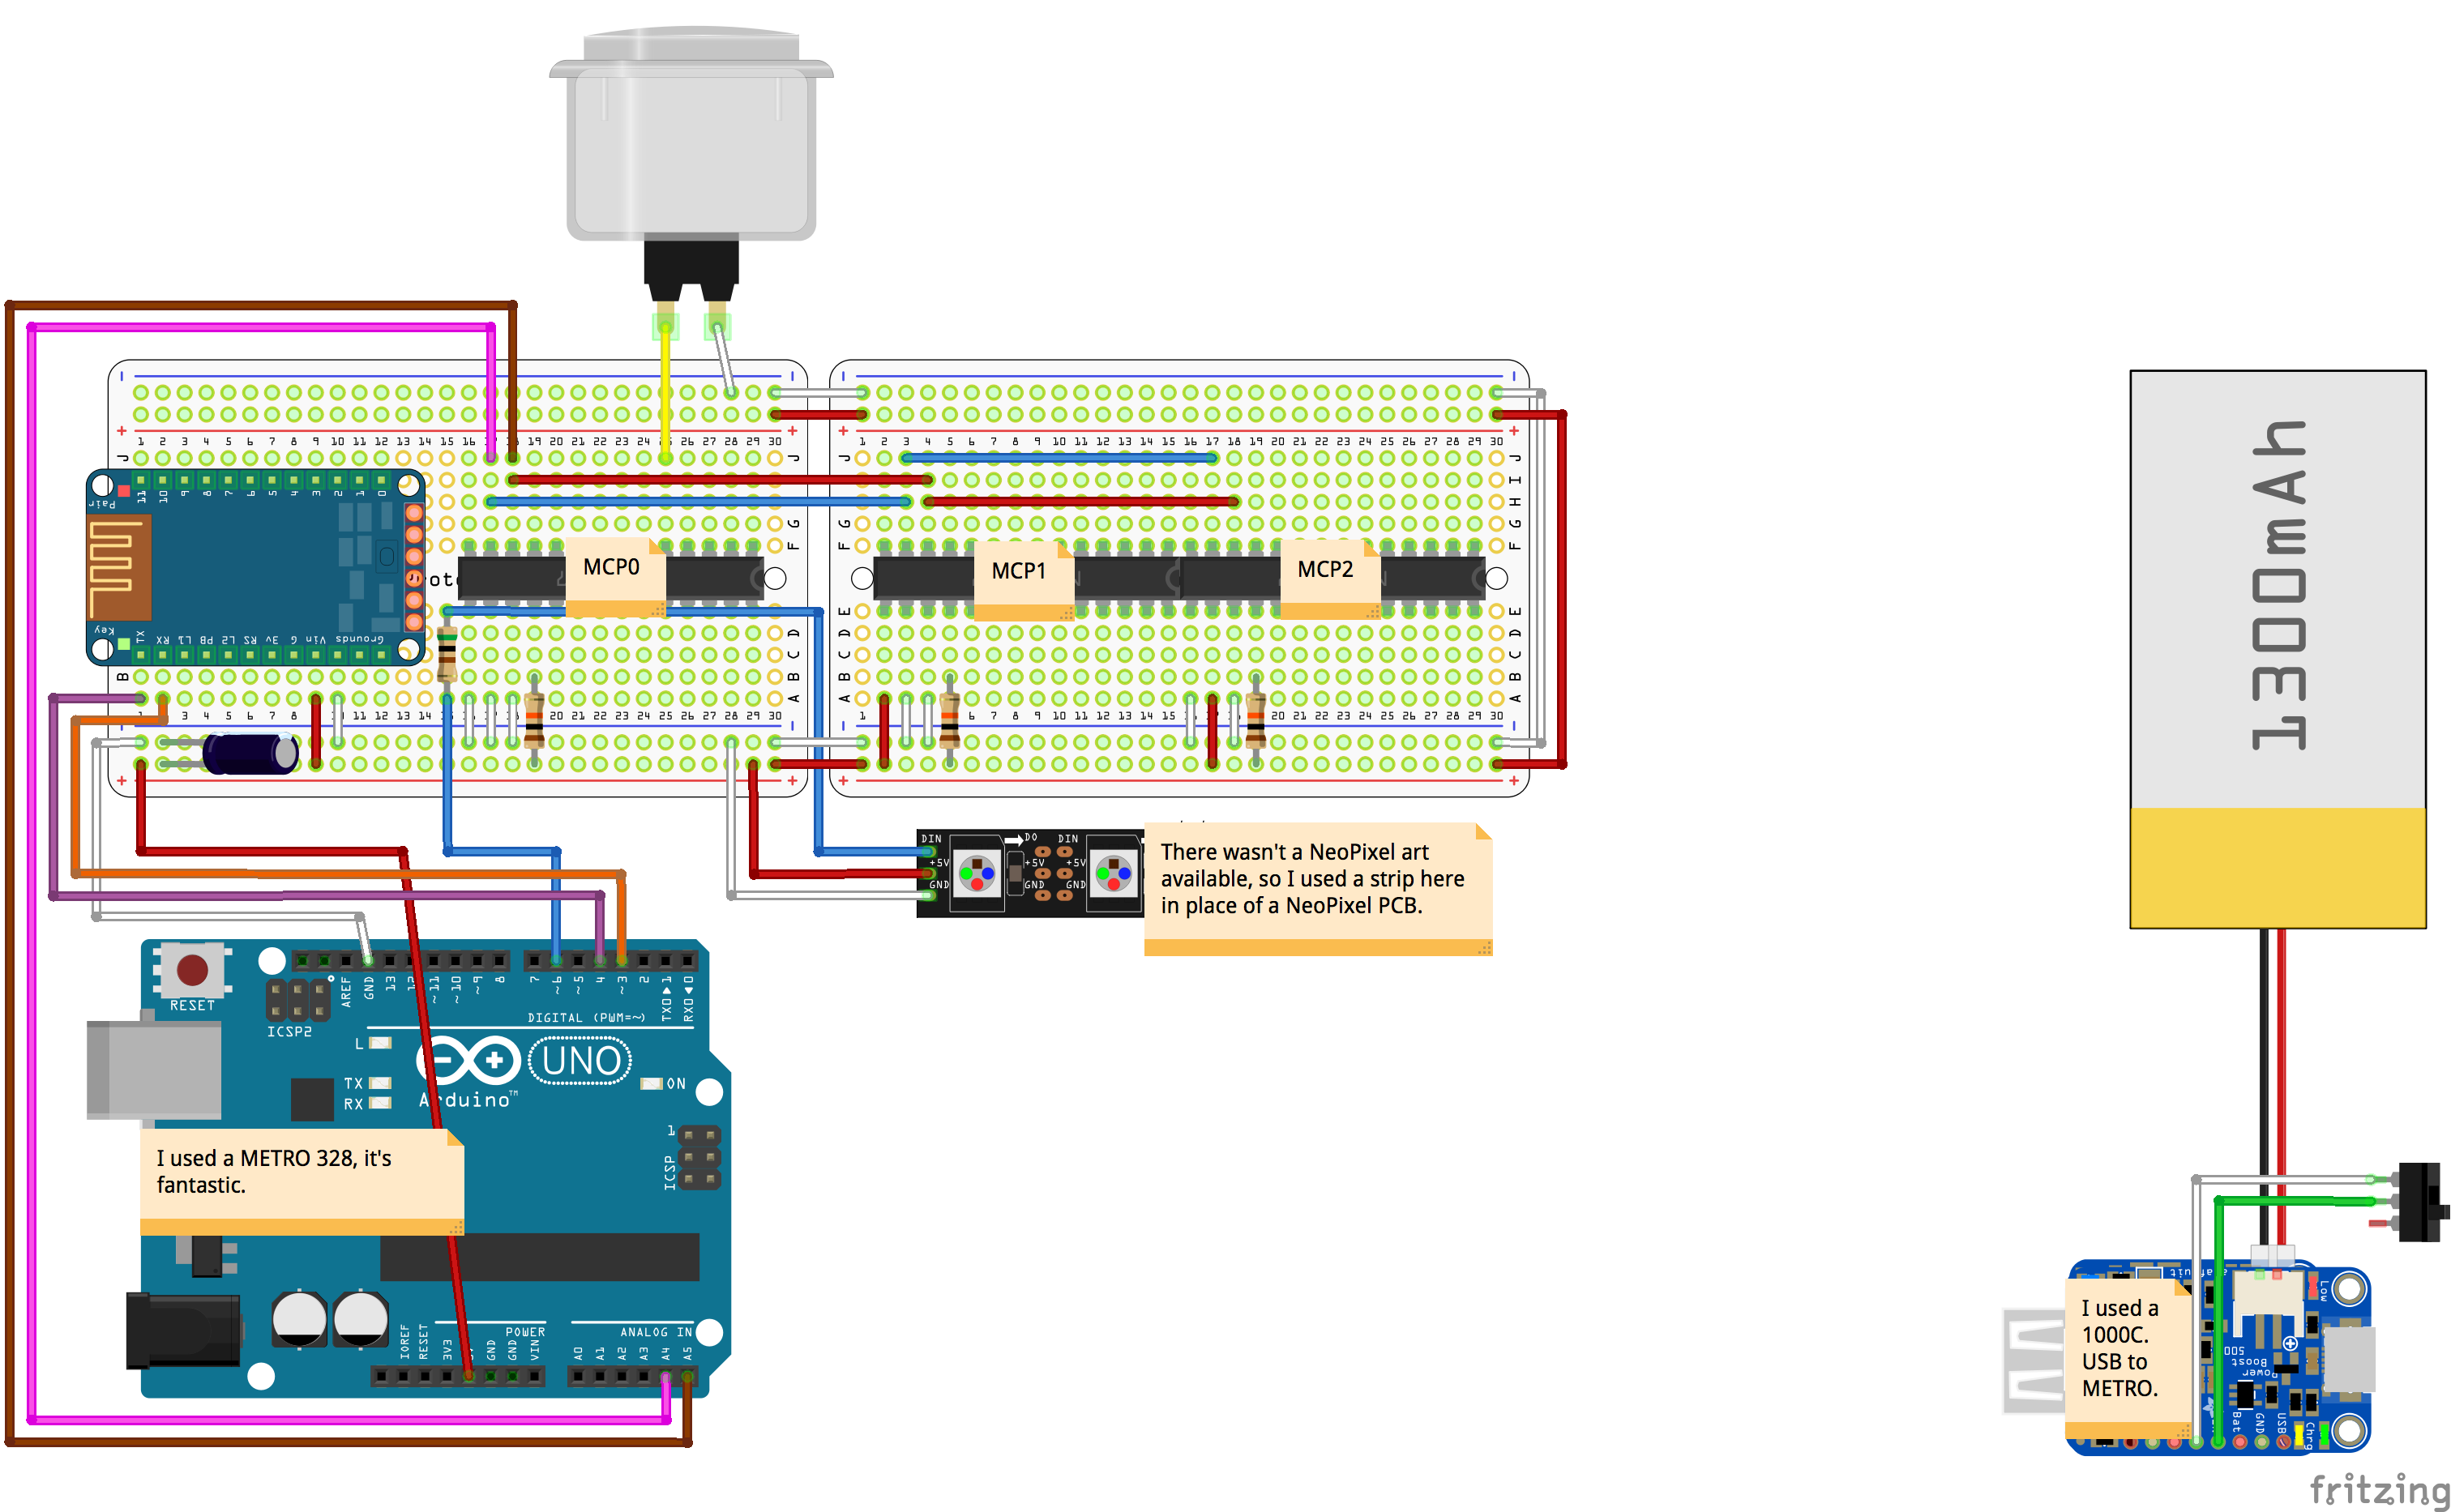 hacks_BlueLive_Fritzing_Schematic_bb.png